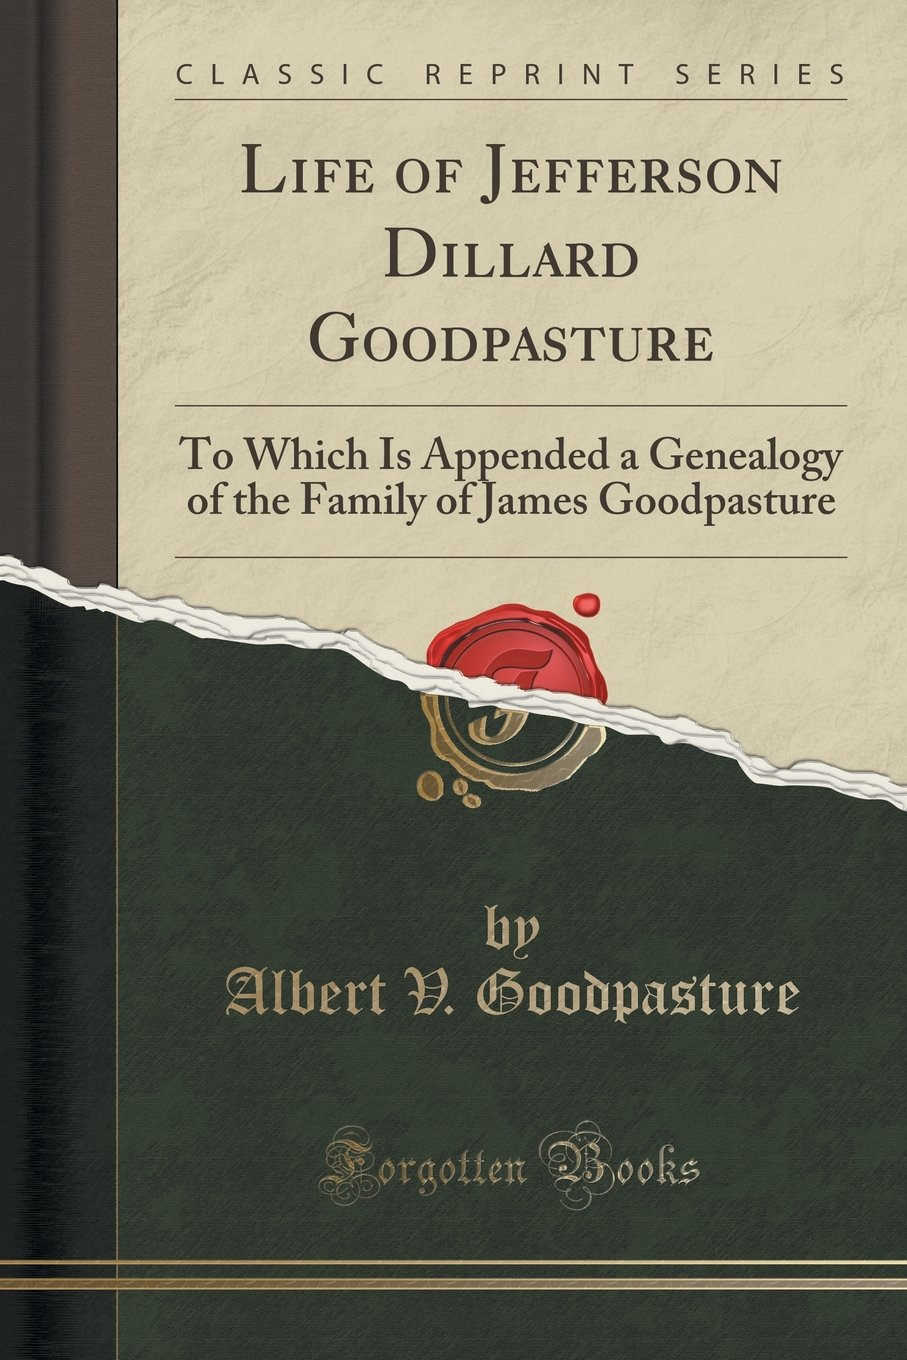 Life of Jefferson Dillard Goodpasture: To Which Is Appended a Genealogy of the Family of James Goodpasture (Classic Reprint) pdf